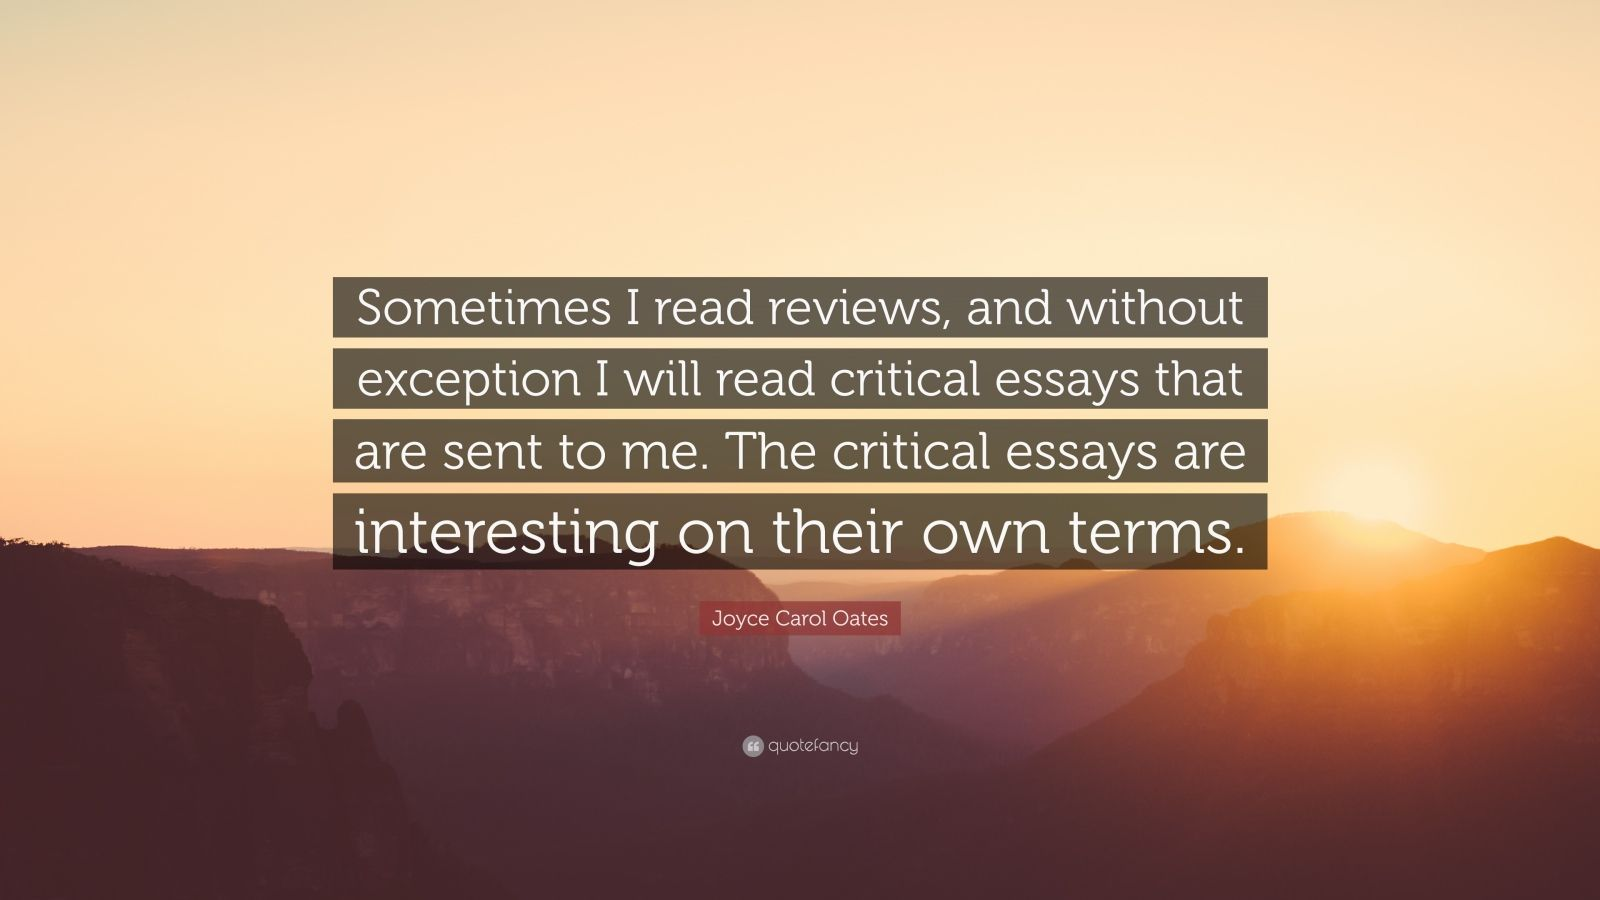 joyce carol oates quotes quotefancy joyce carol oates quote ldquosometimes i reviews and out exception i will